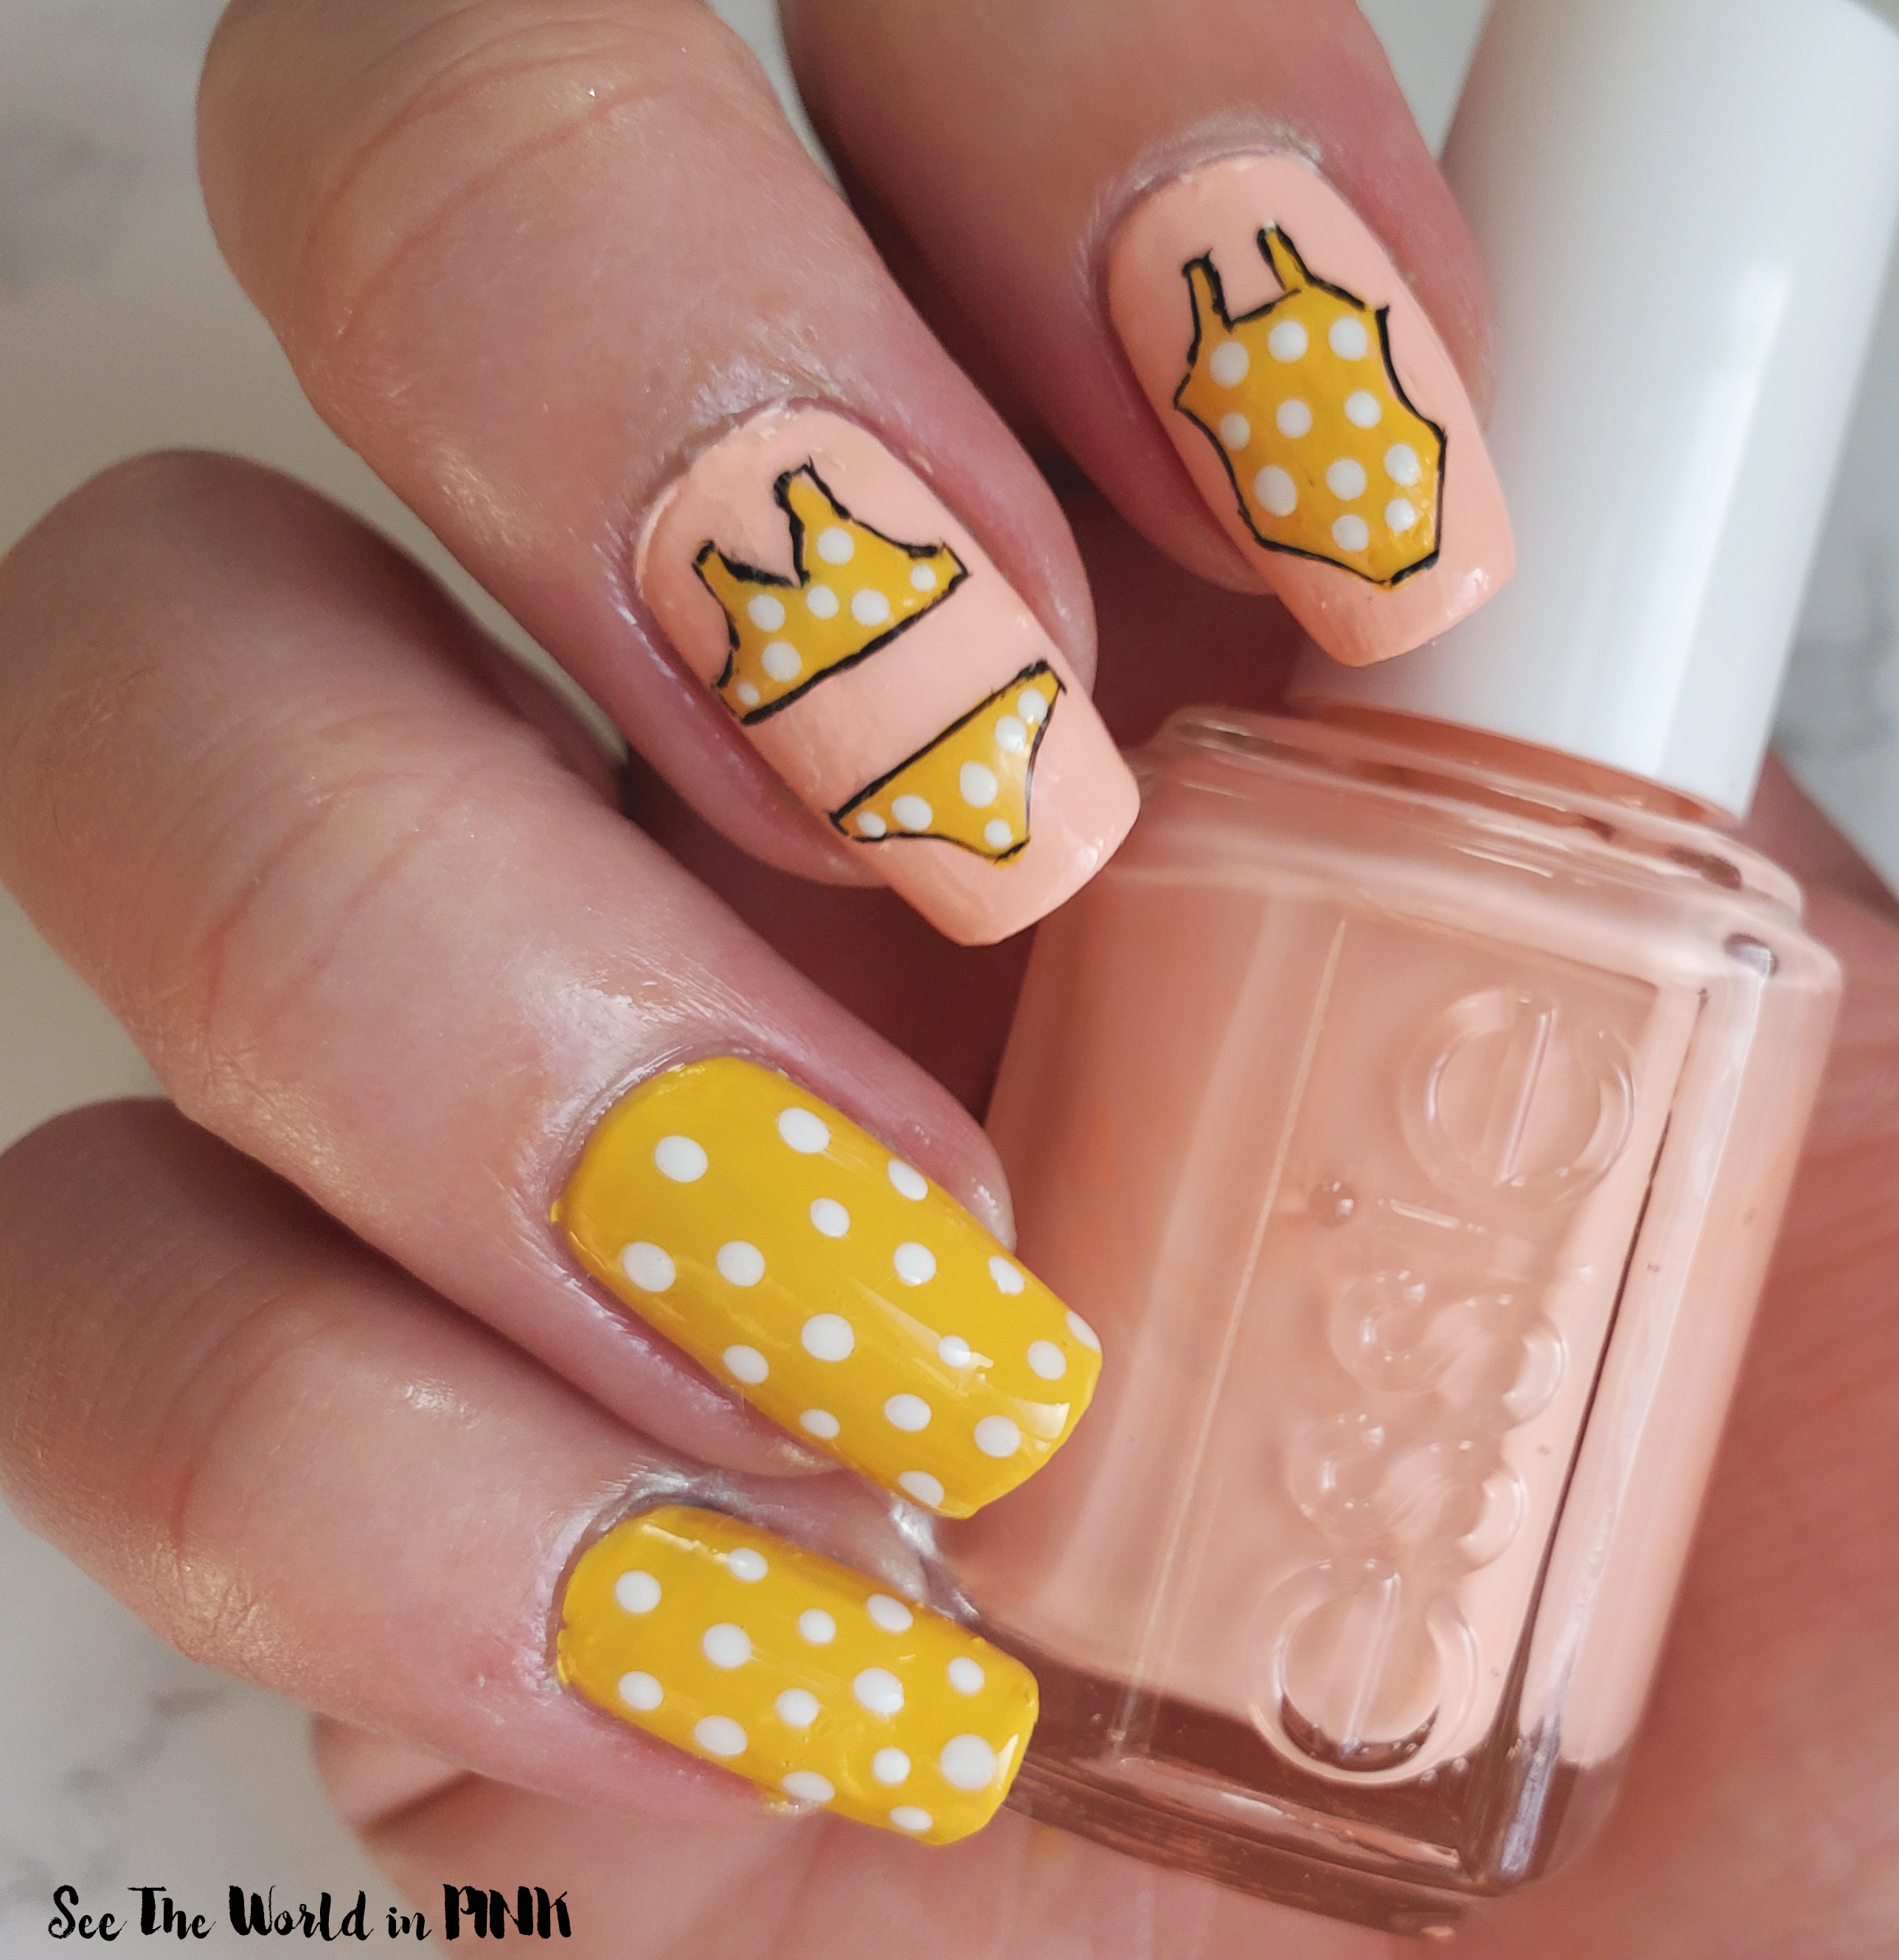 Manicure Monday - Yellow Polka Dot Bikini Nail Art